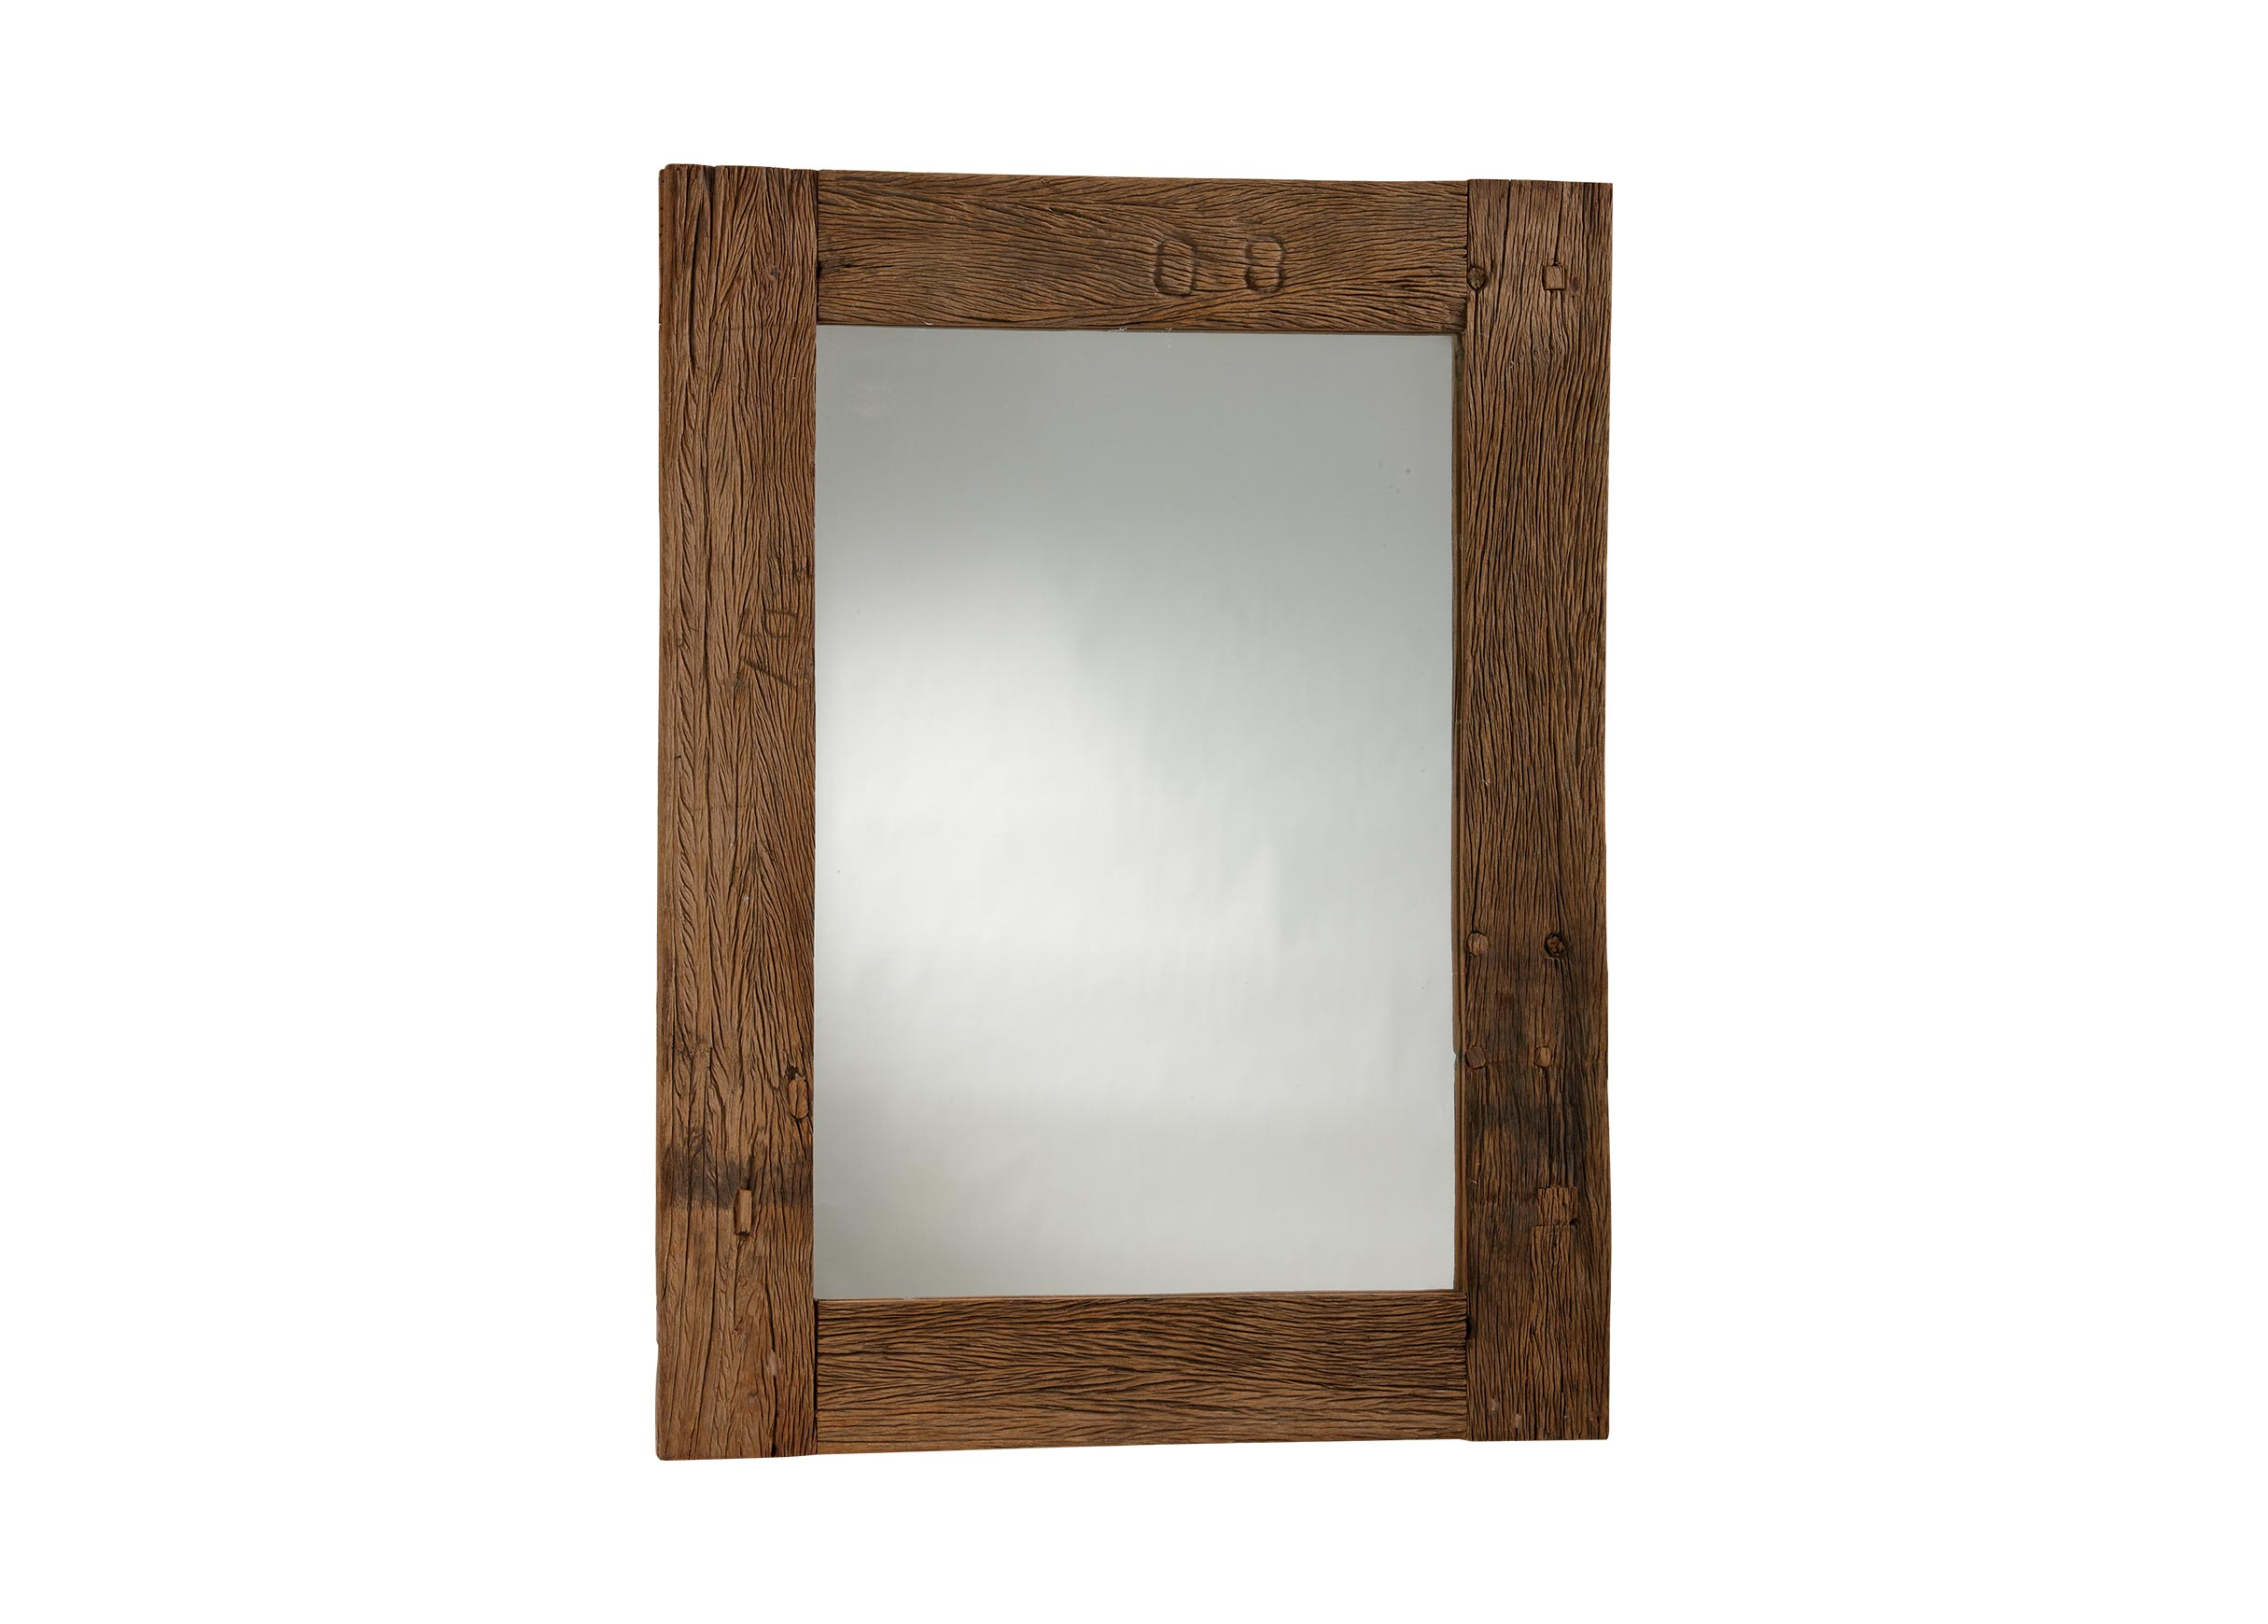 Reclaimed Wood Wall Mirror Mirrors Ethan Allen